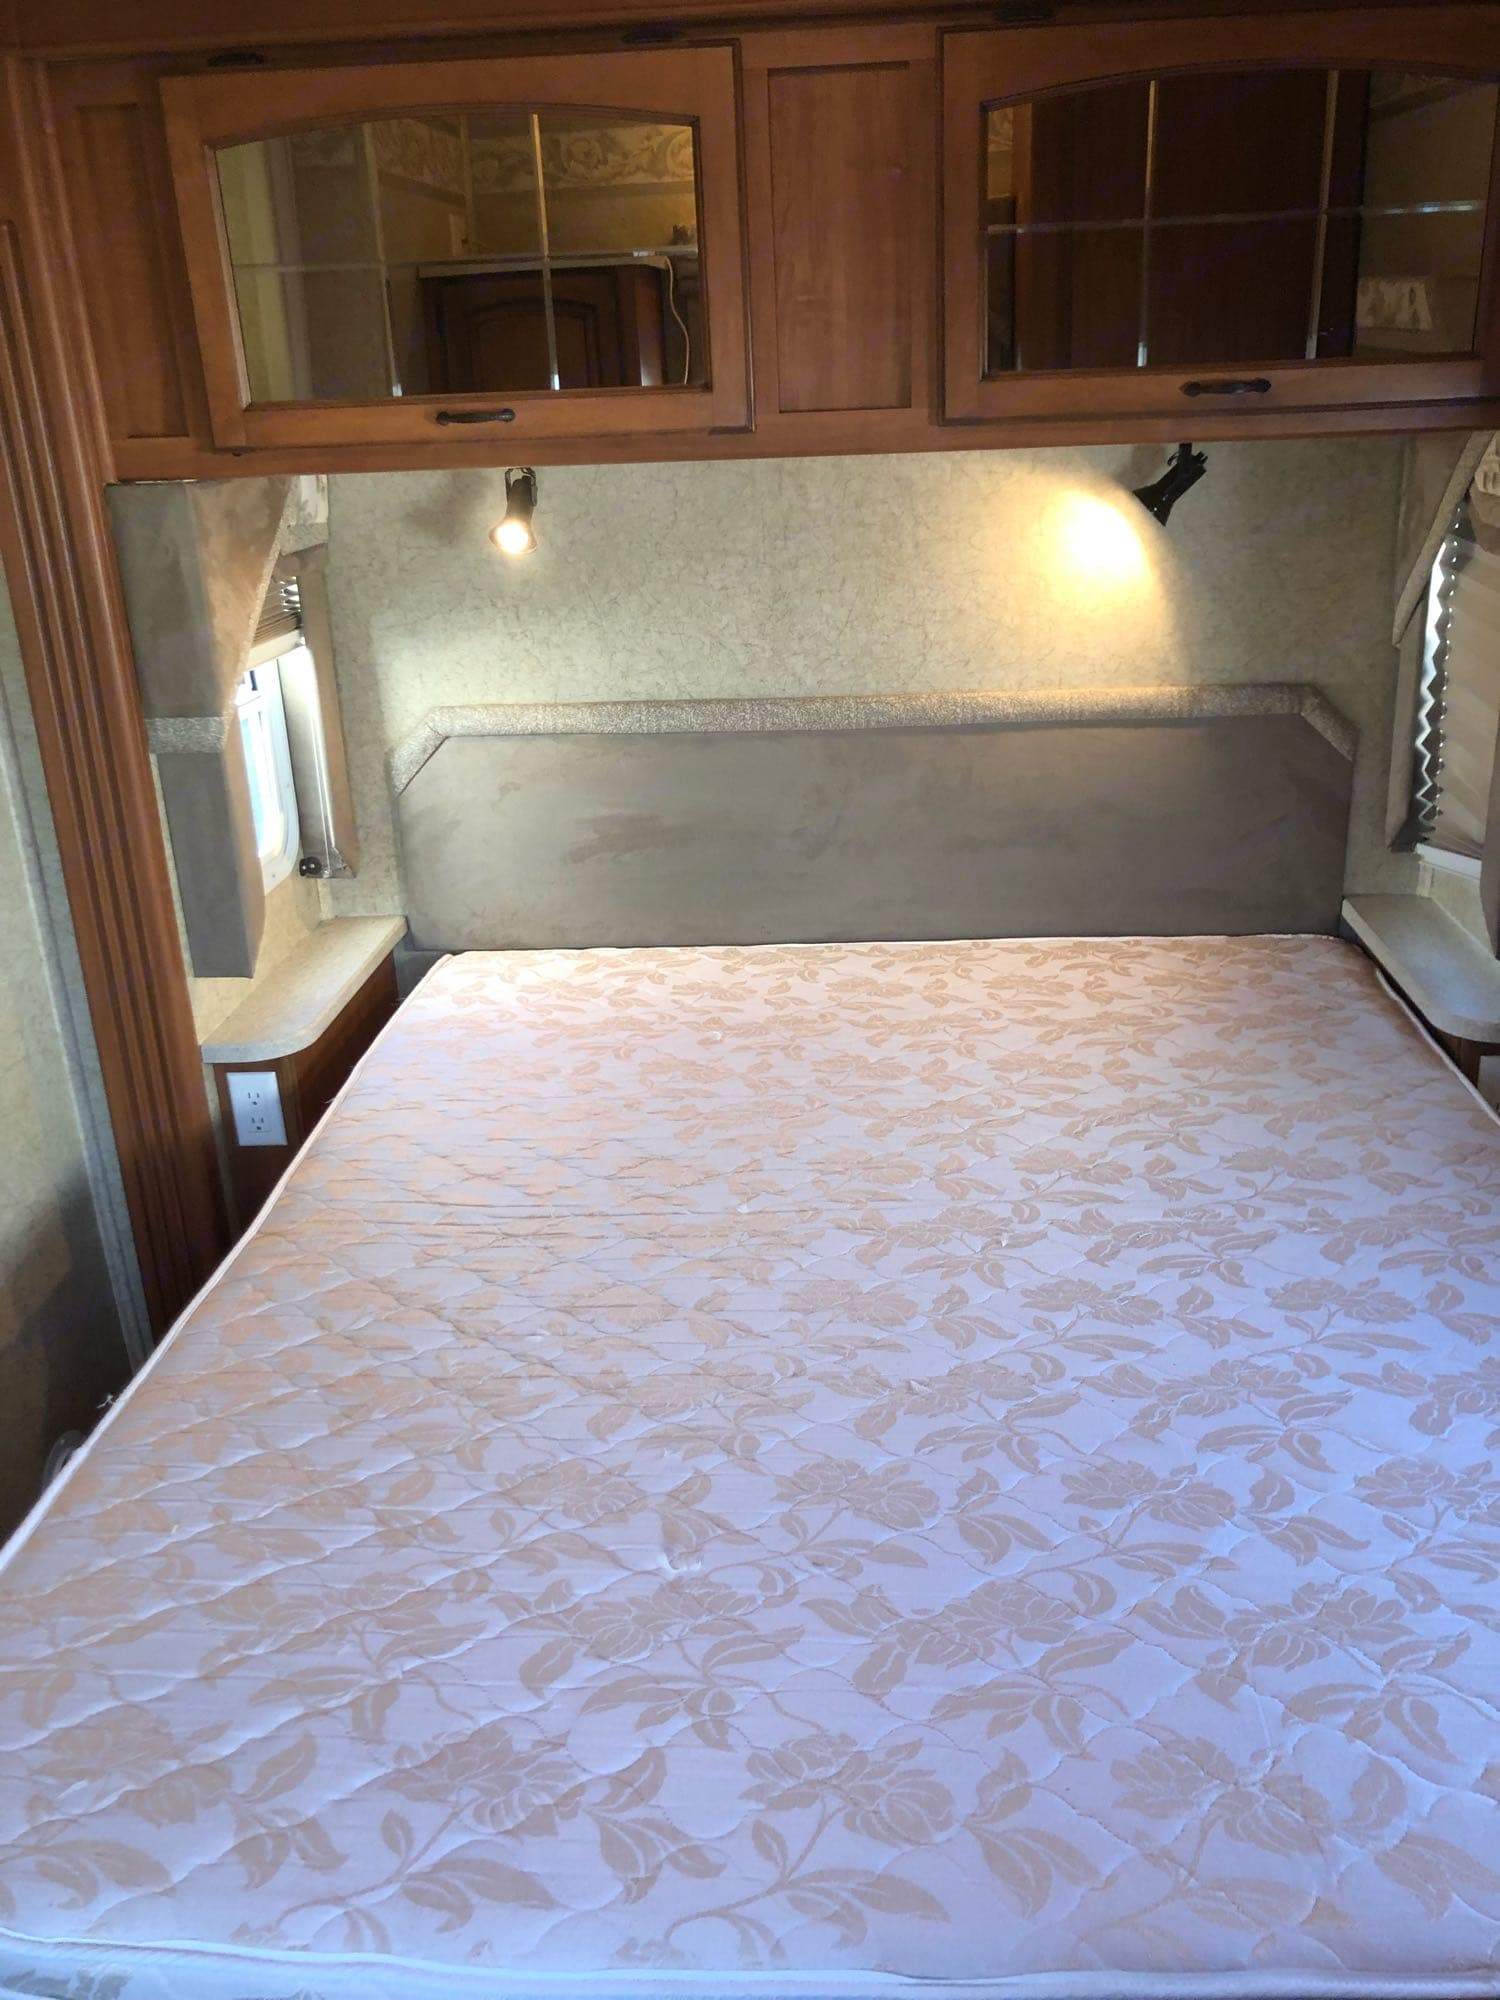 queen mattress slightly used like new no stains also we provide a mattress cover for the mattress during your rental. Jayco Greyhawk 2007